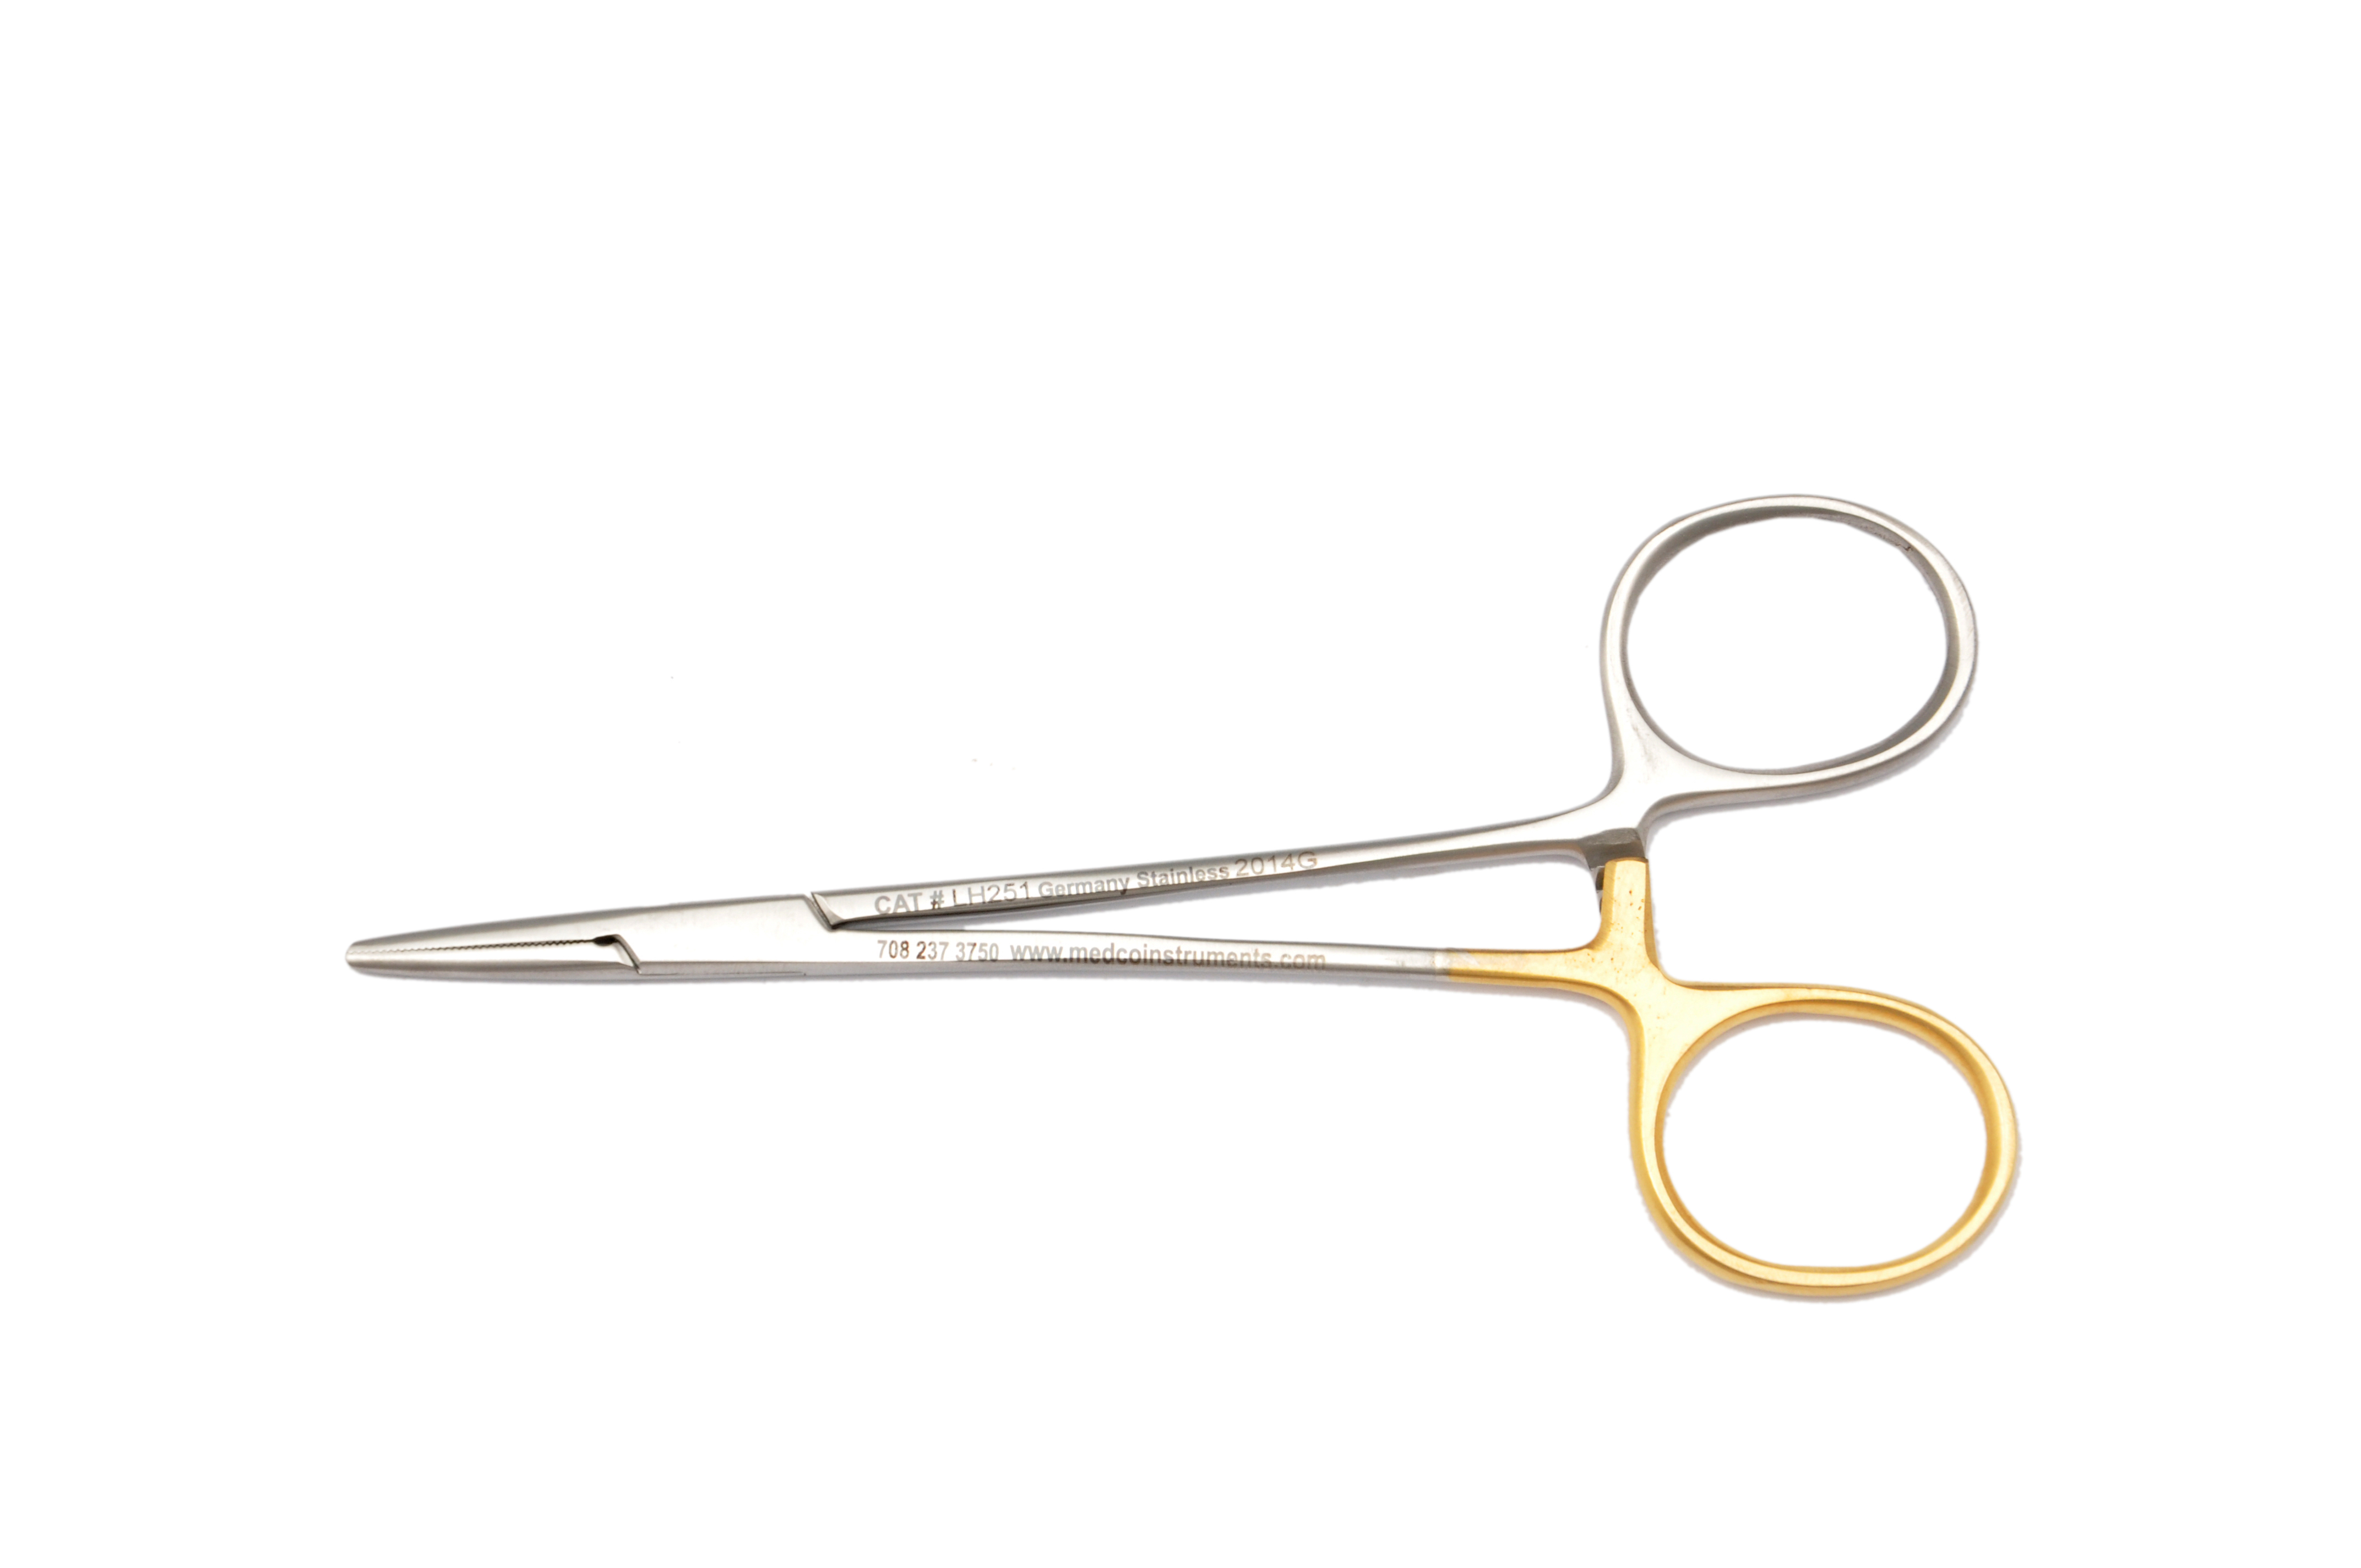 """LEFT Handed Mosquito Forceps 5"""" Straight LH251"""